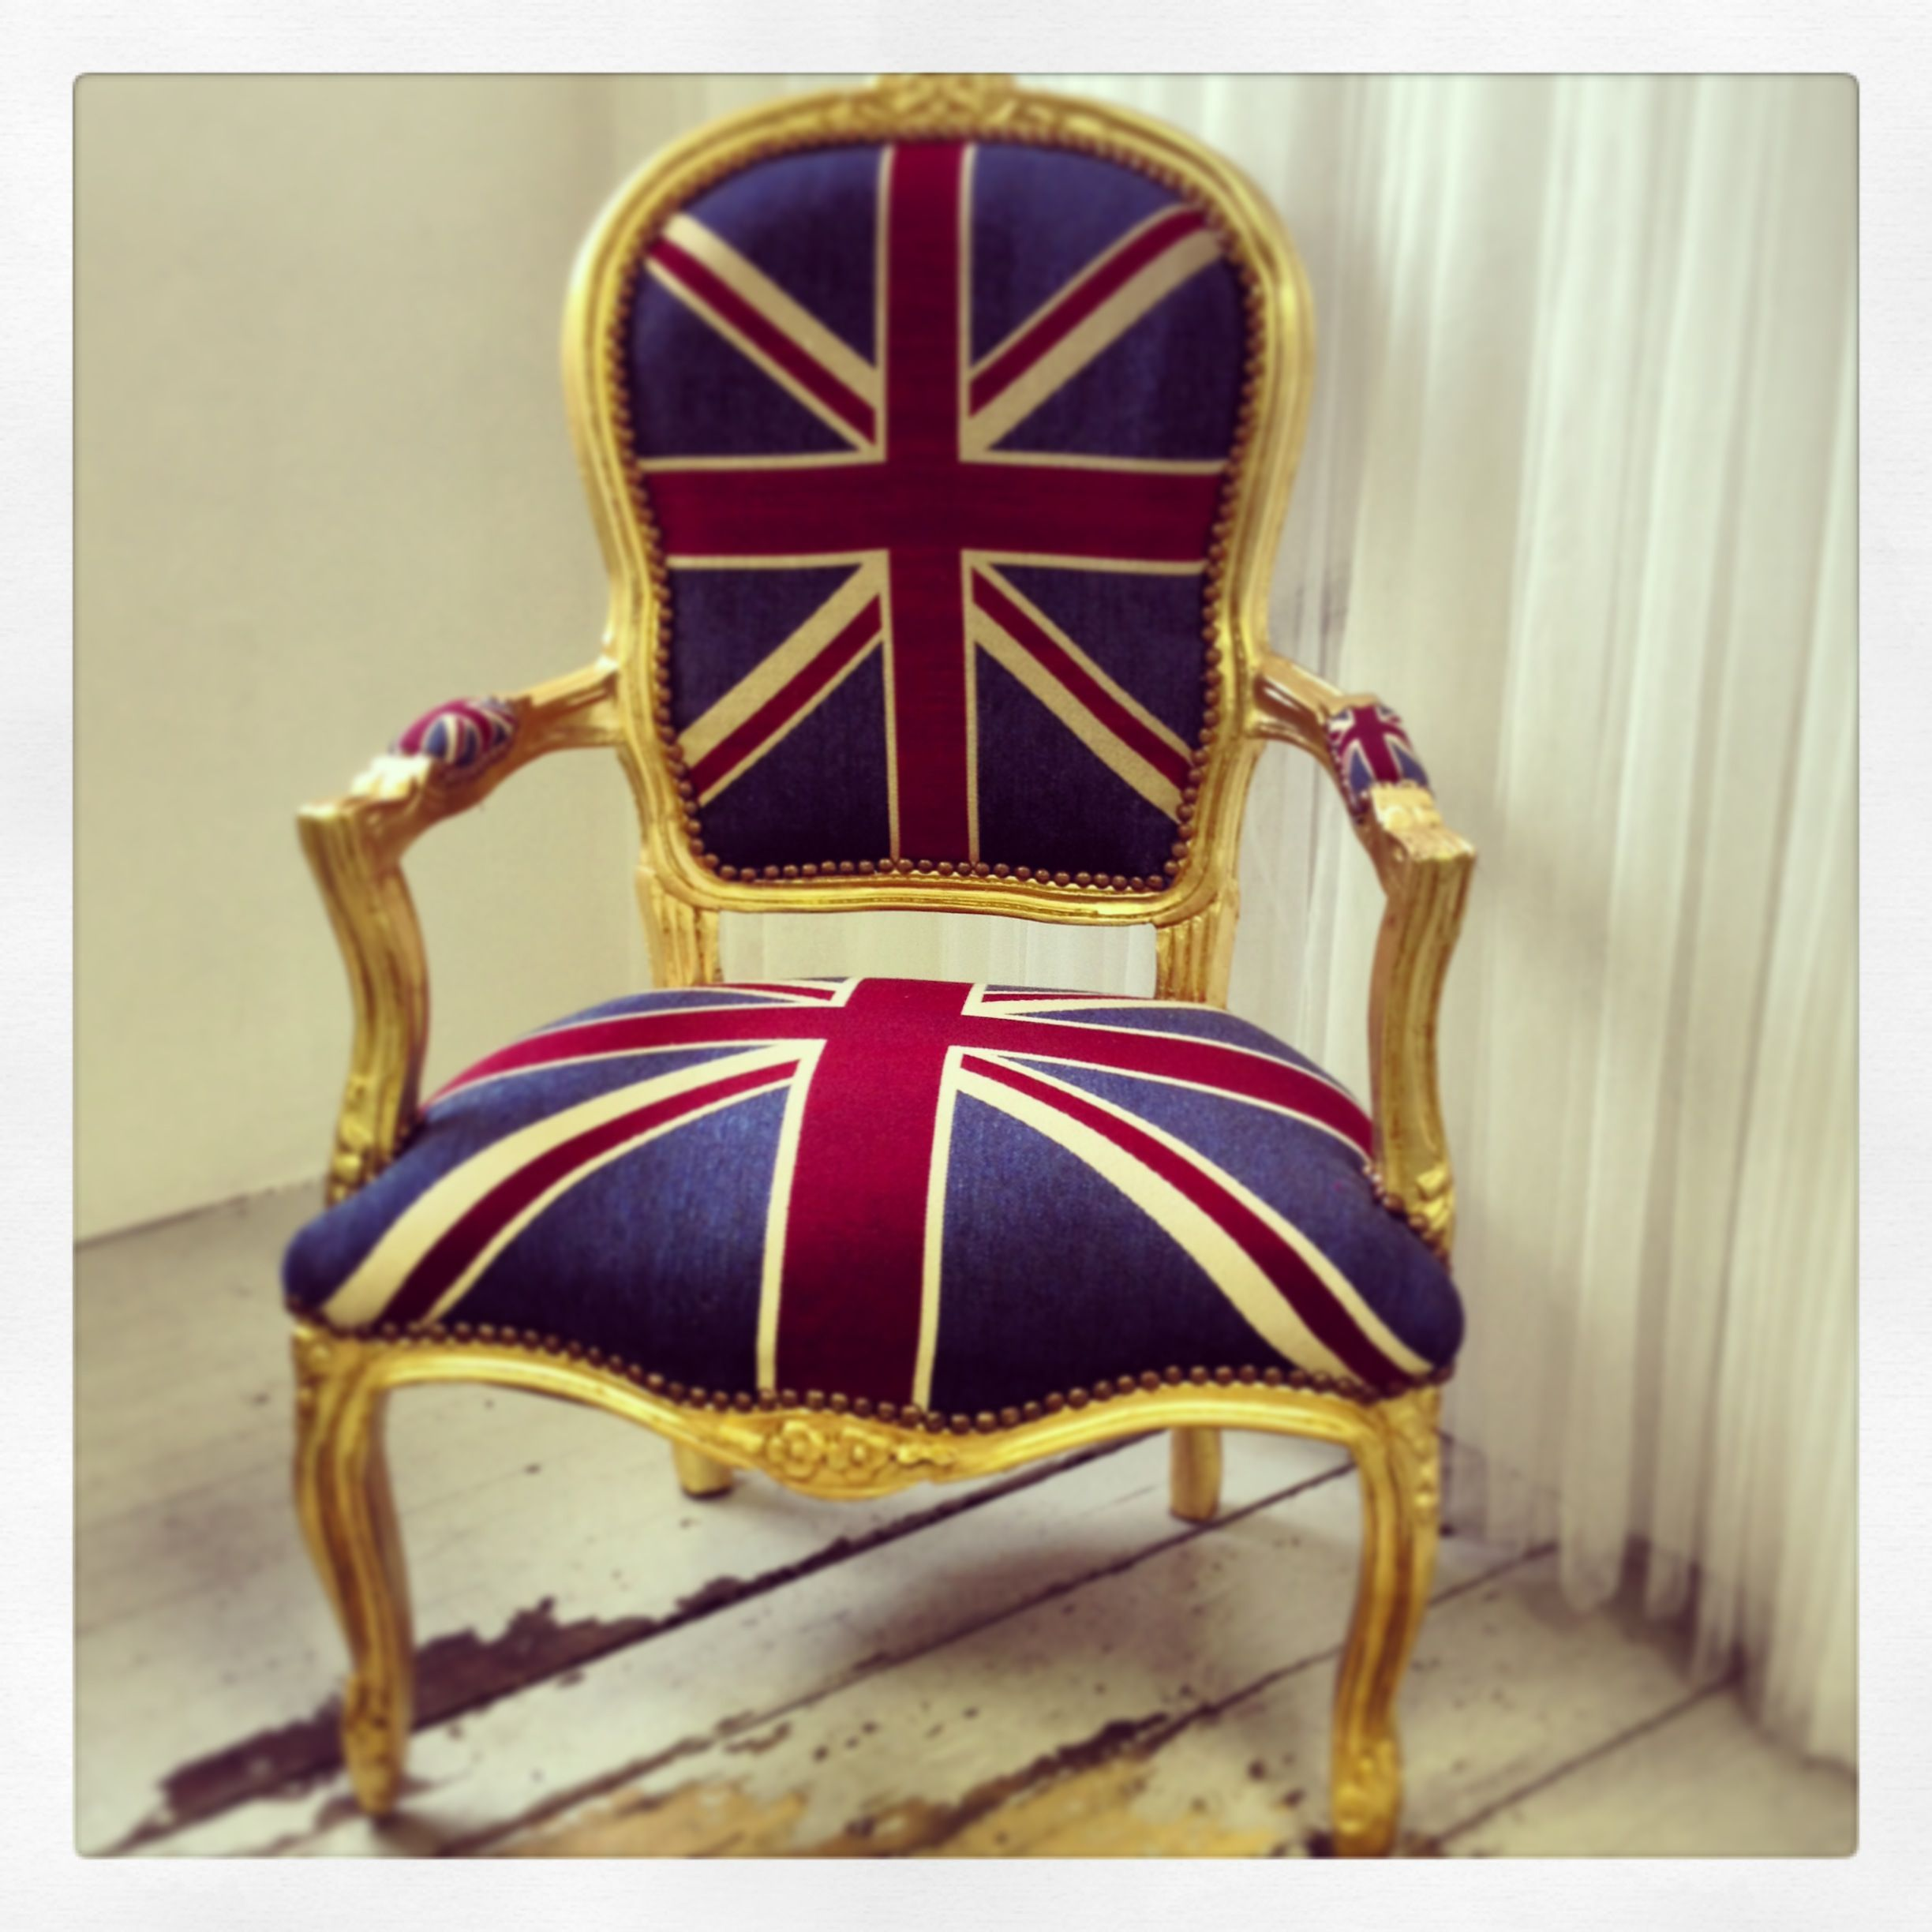 union jack furniture. Vintage Style Union Jack Throne Chair By Made With Love Designs Ltd. Furniture E